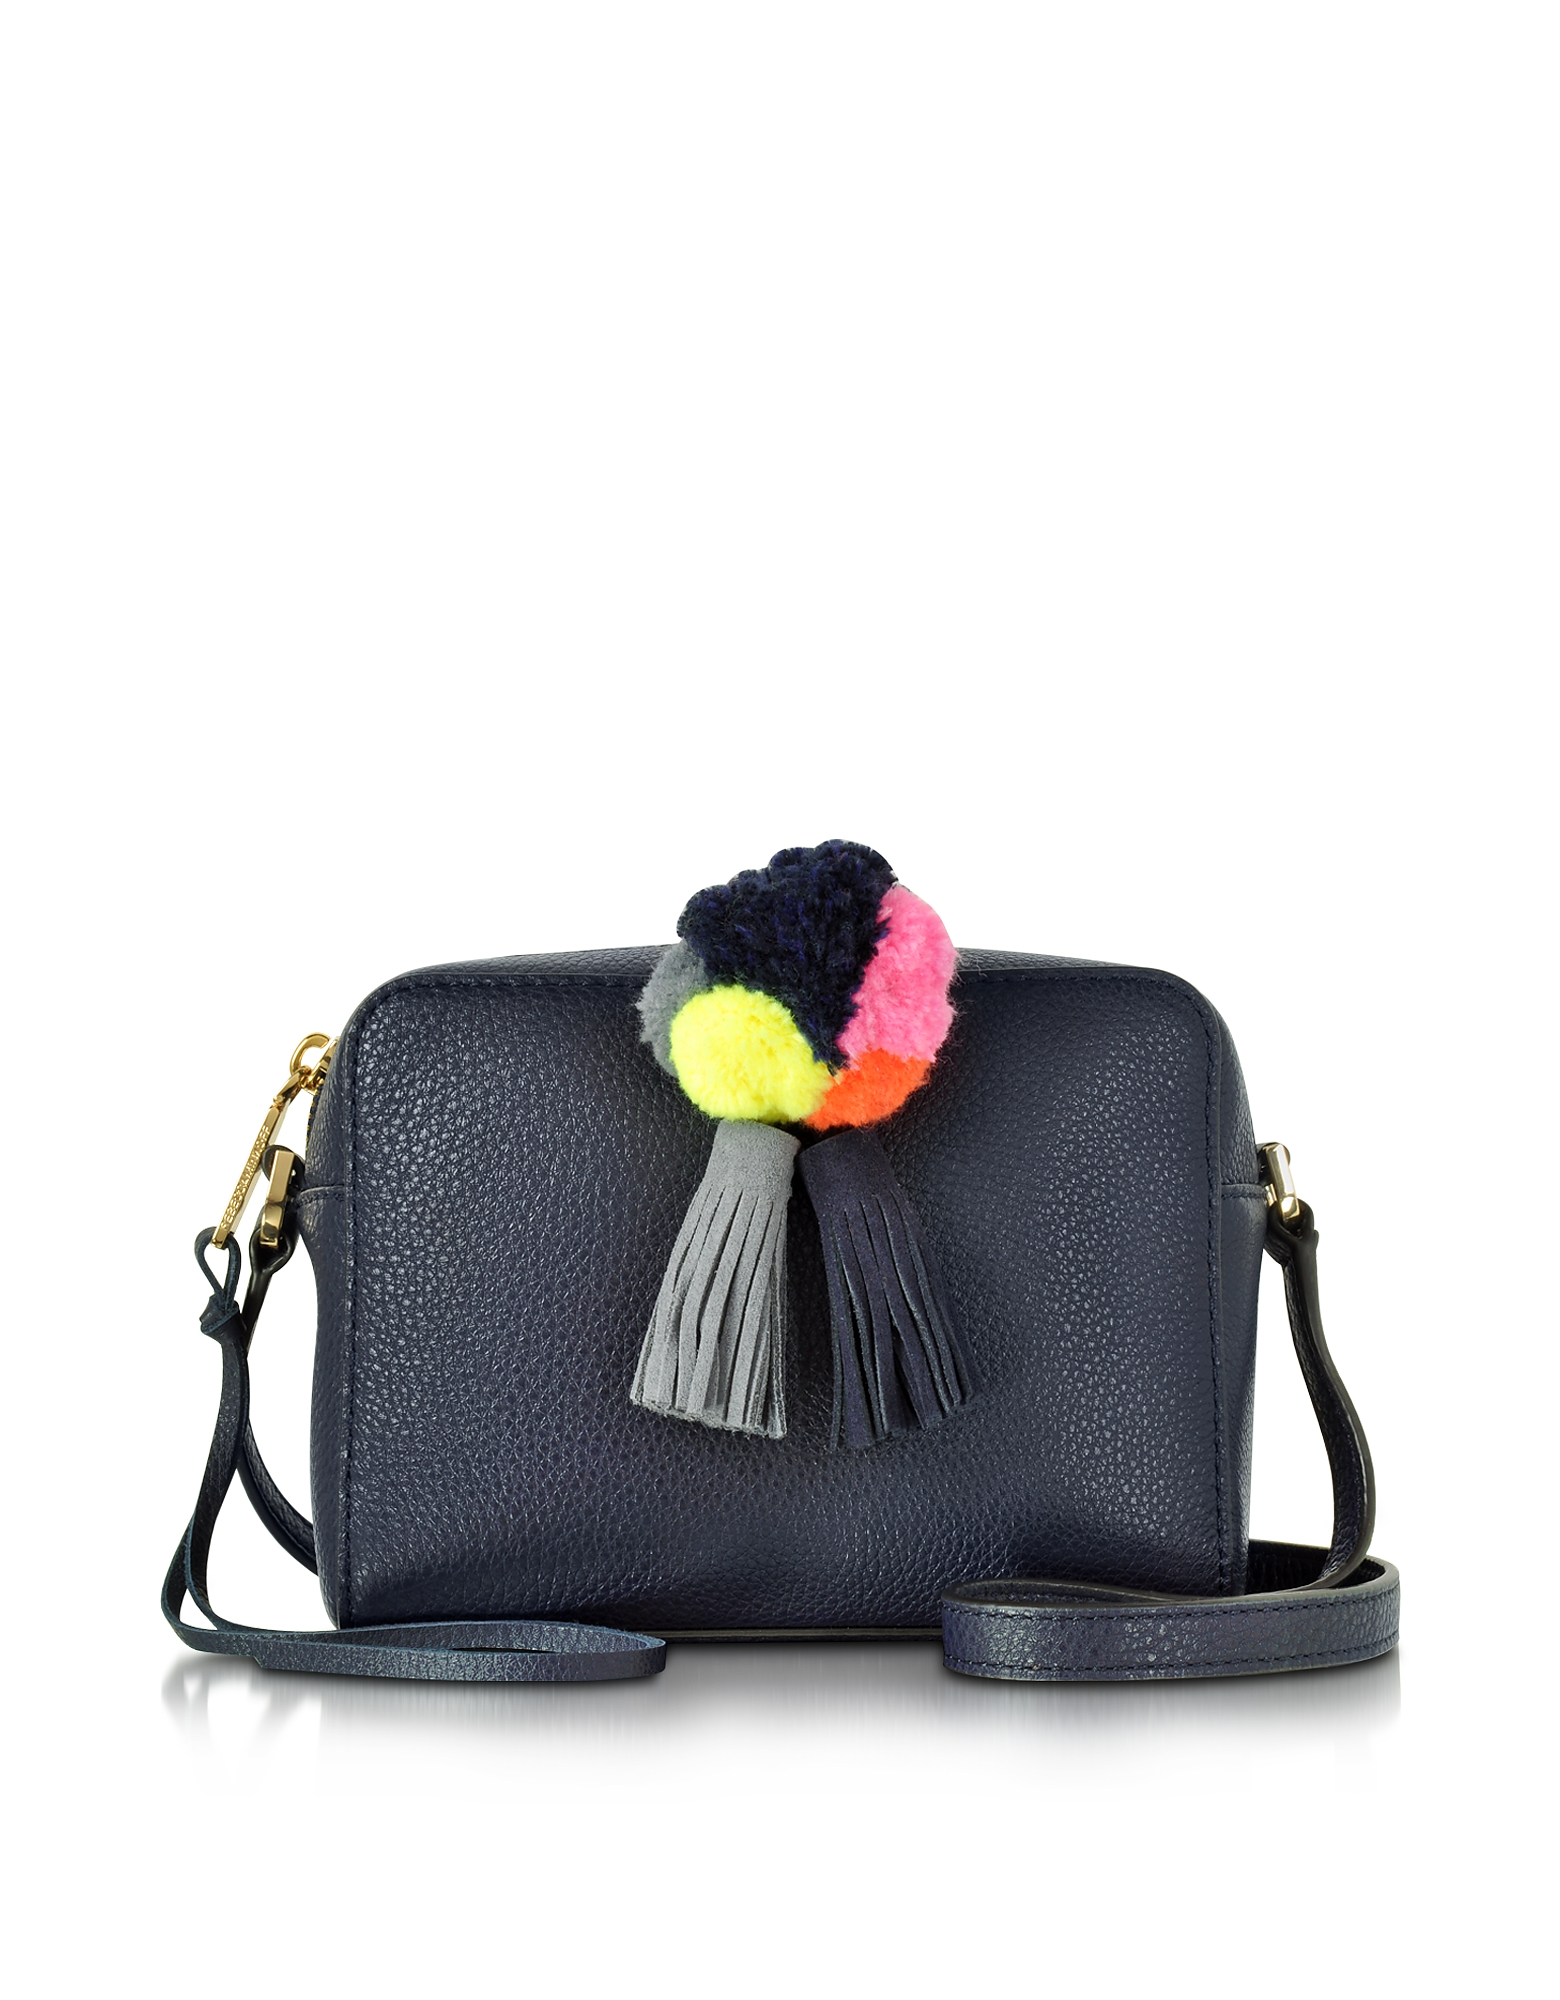 Rebecca Minkoff Handbags, Pom Pom Moon Leather Mini Sofia Crossbody